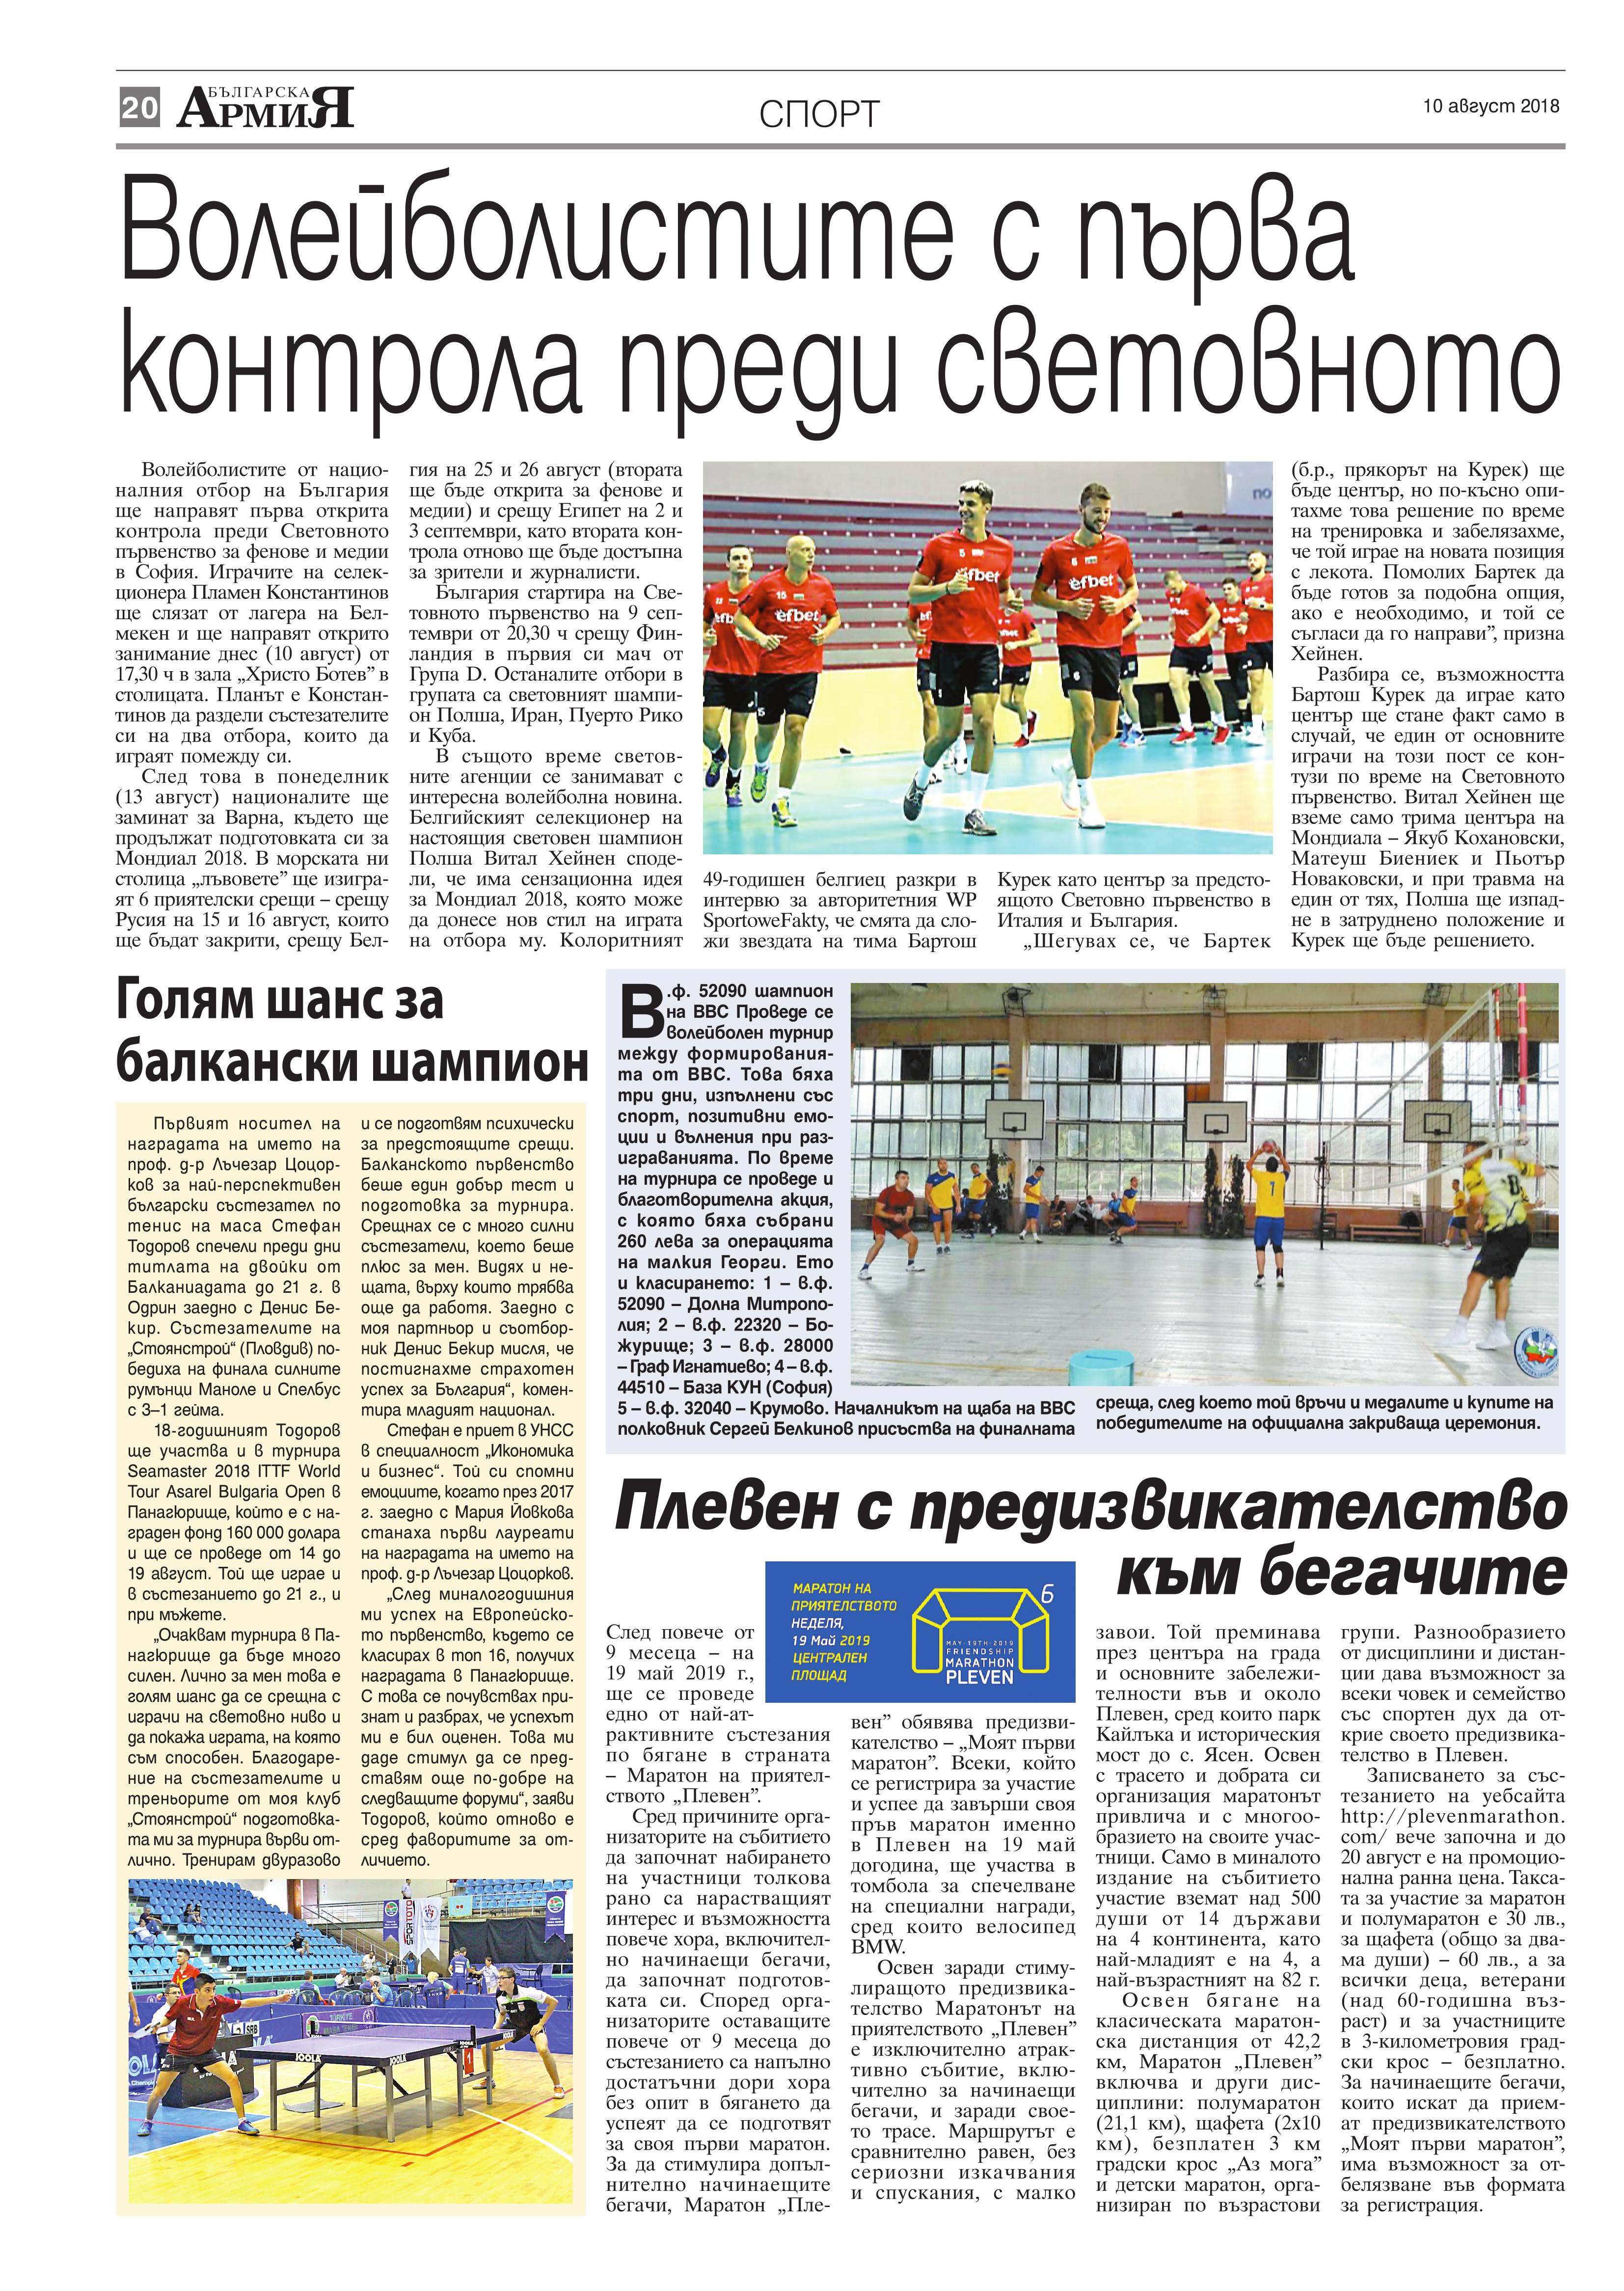 https://armymedia.bg/wp-content/uploads/2015/06/20.page1_-61.jpg